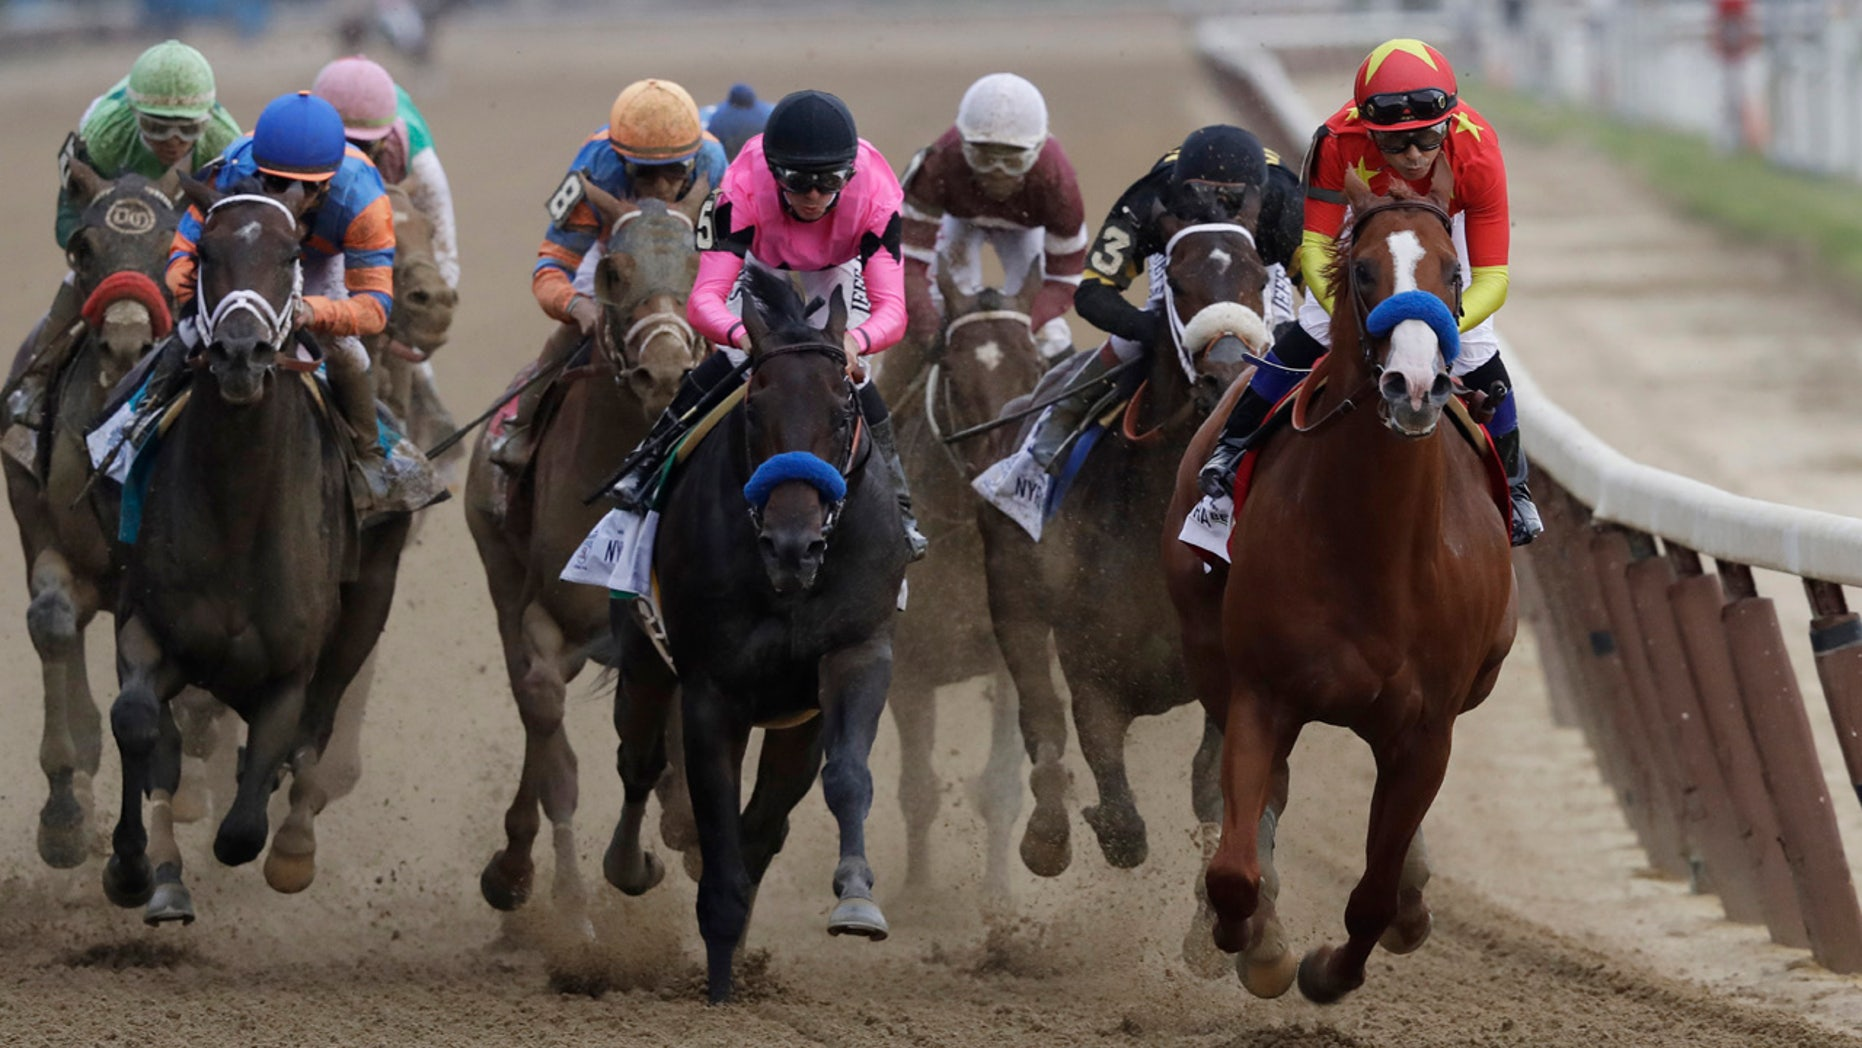 Justify, right, ridden Mike Smith leads the field at the end of the backstretch during the Belmont Stakes horse race.